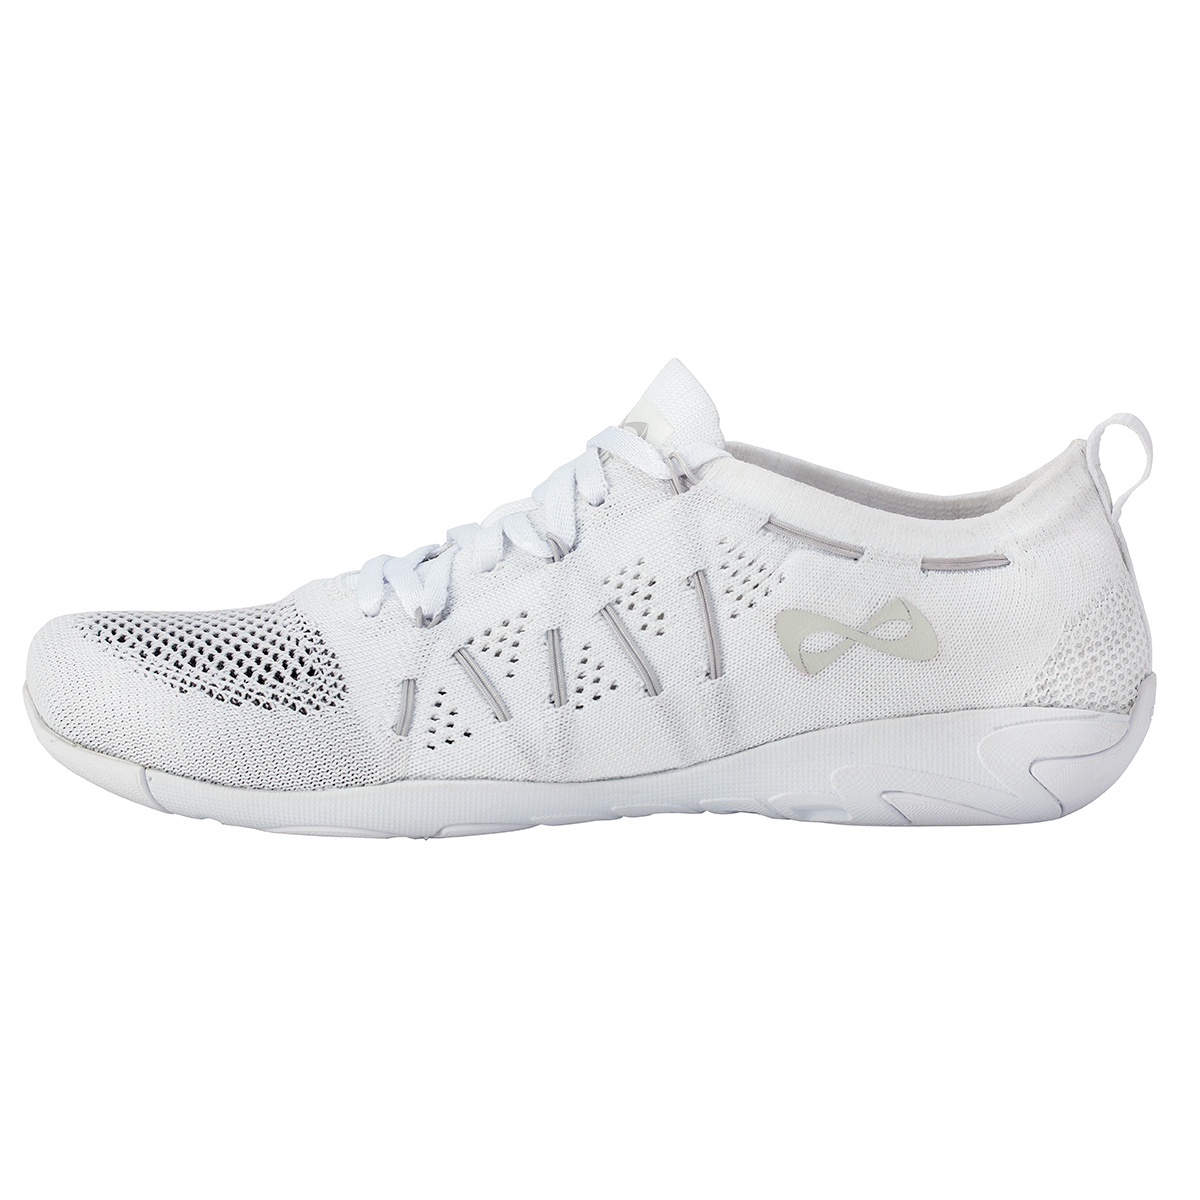 nfinity cheerleading shoes we carry the vengeance flyte